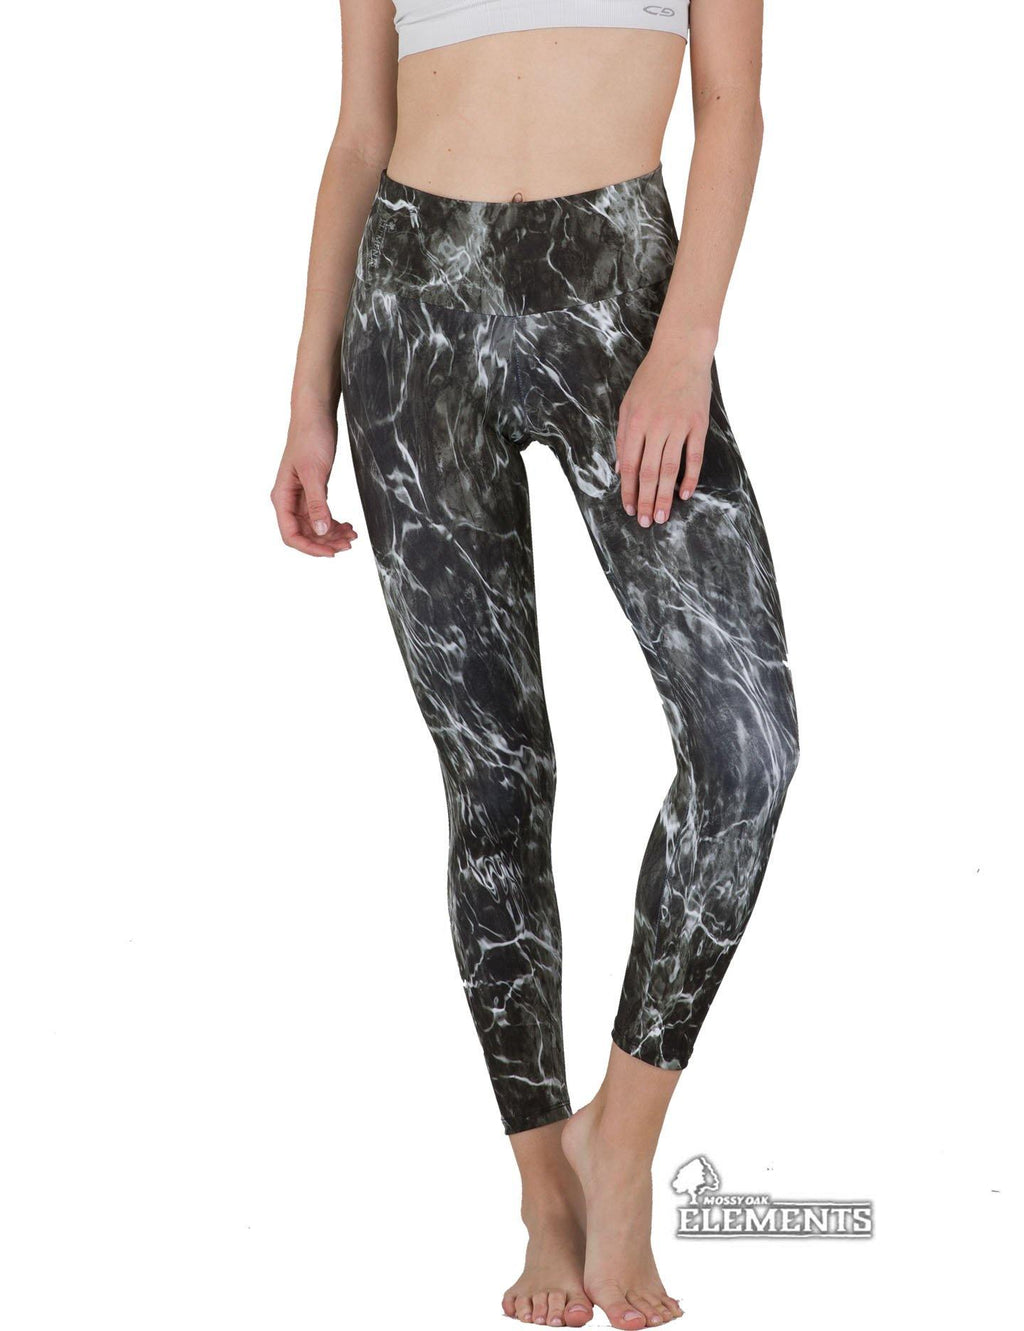 Apsara Leggings High Waist Cropped, Mossy Oak Elements Blacktip